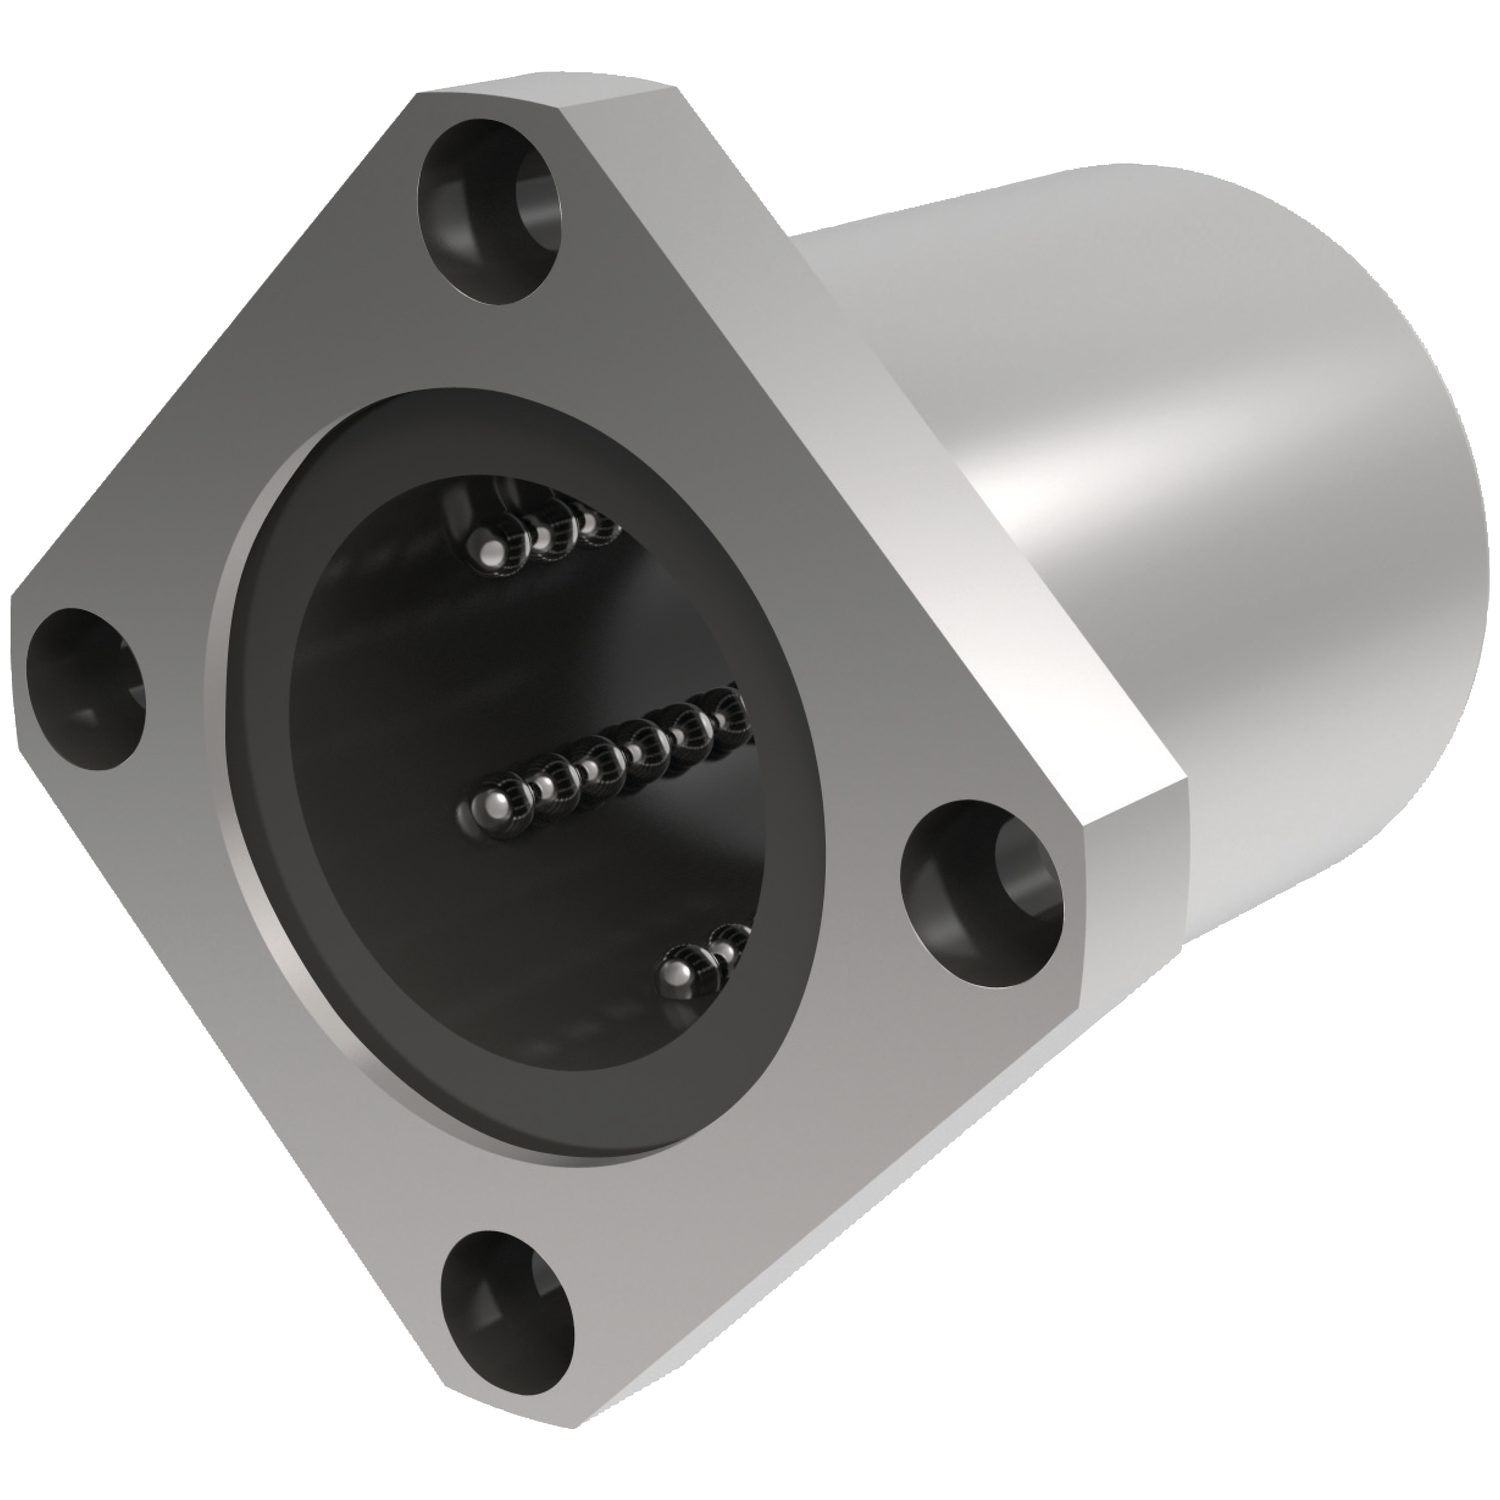 Product L1719, Flanged Linear Ball Bushings square flange /